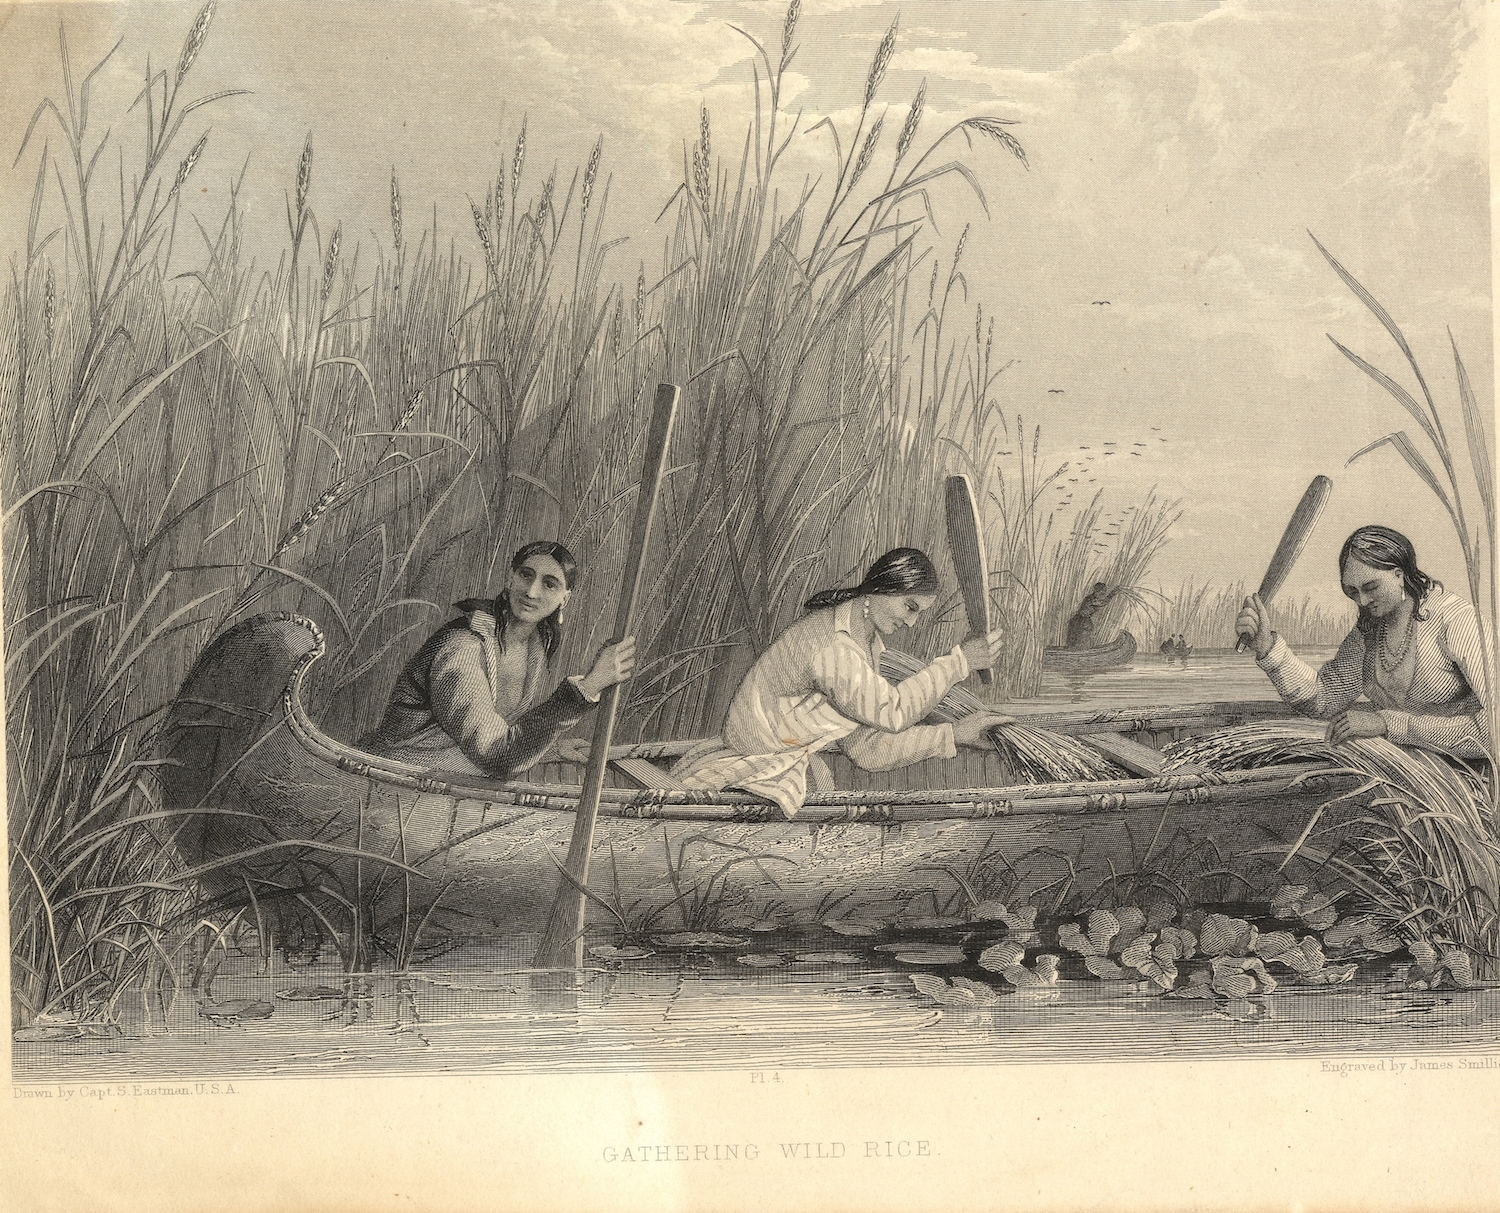 Wild rice was once a plentiful food source in the Milwaukee area. Indigenous peoples harvested the rice by knocking the grains with paddles into canoes.